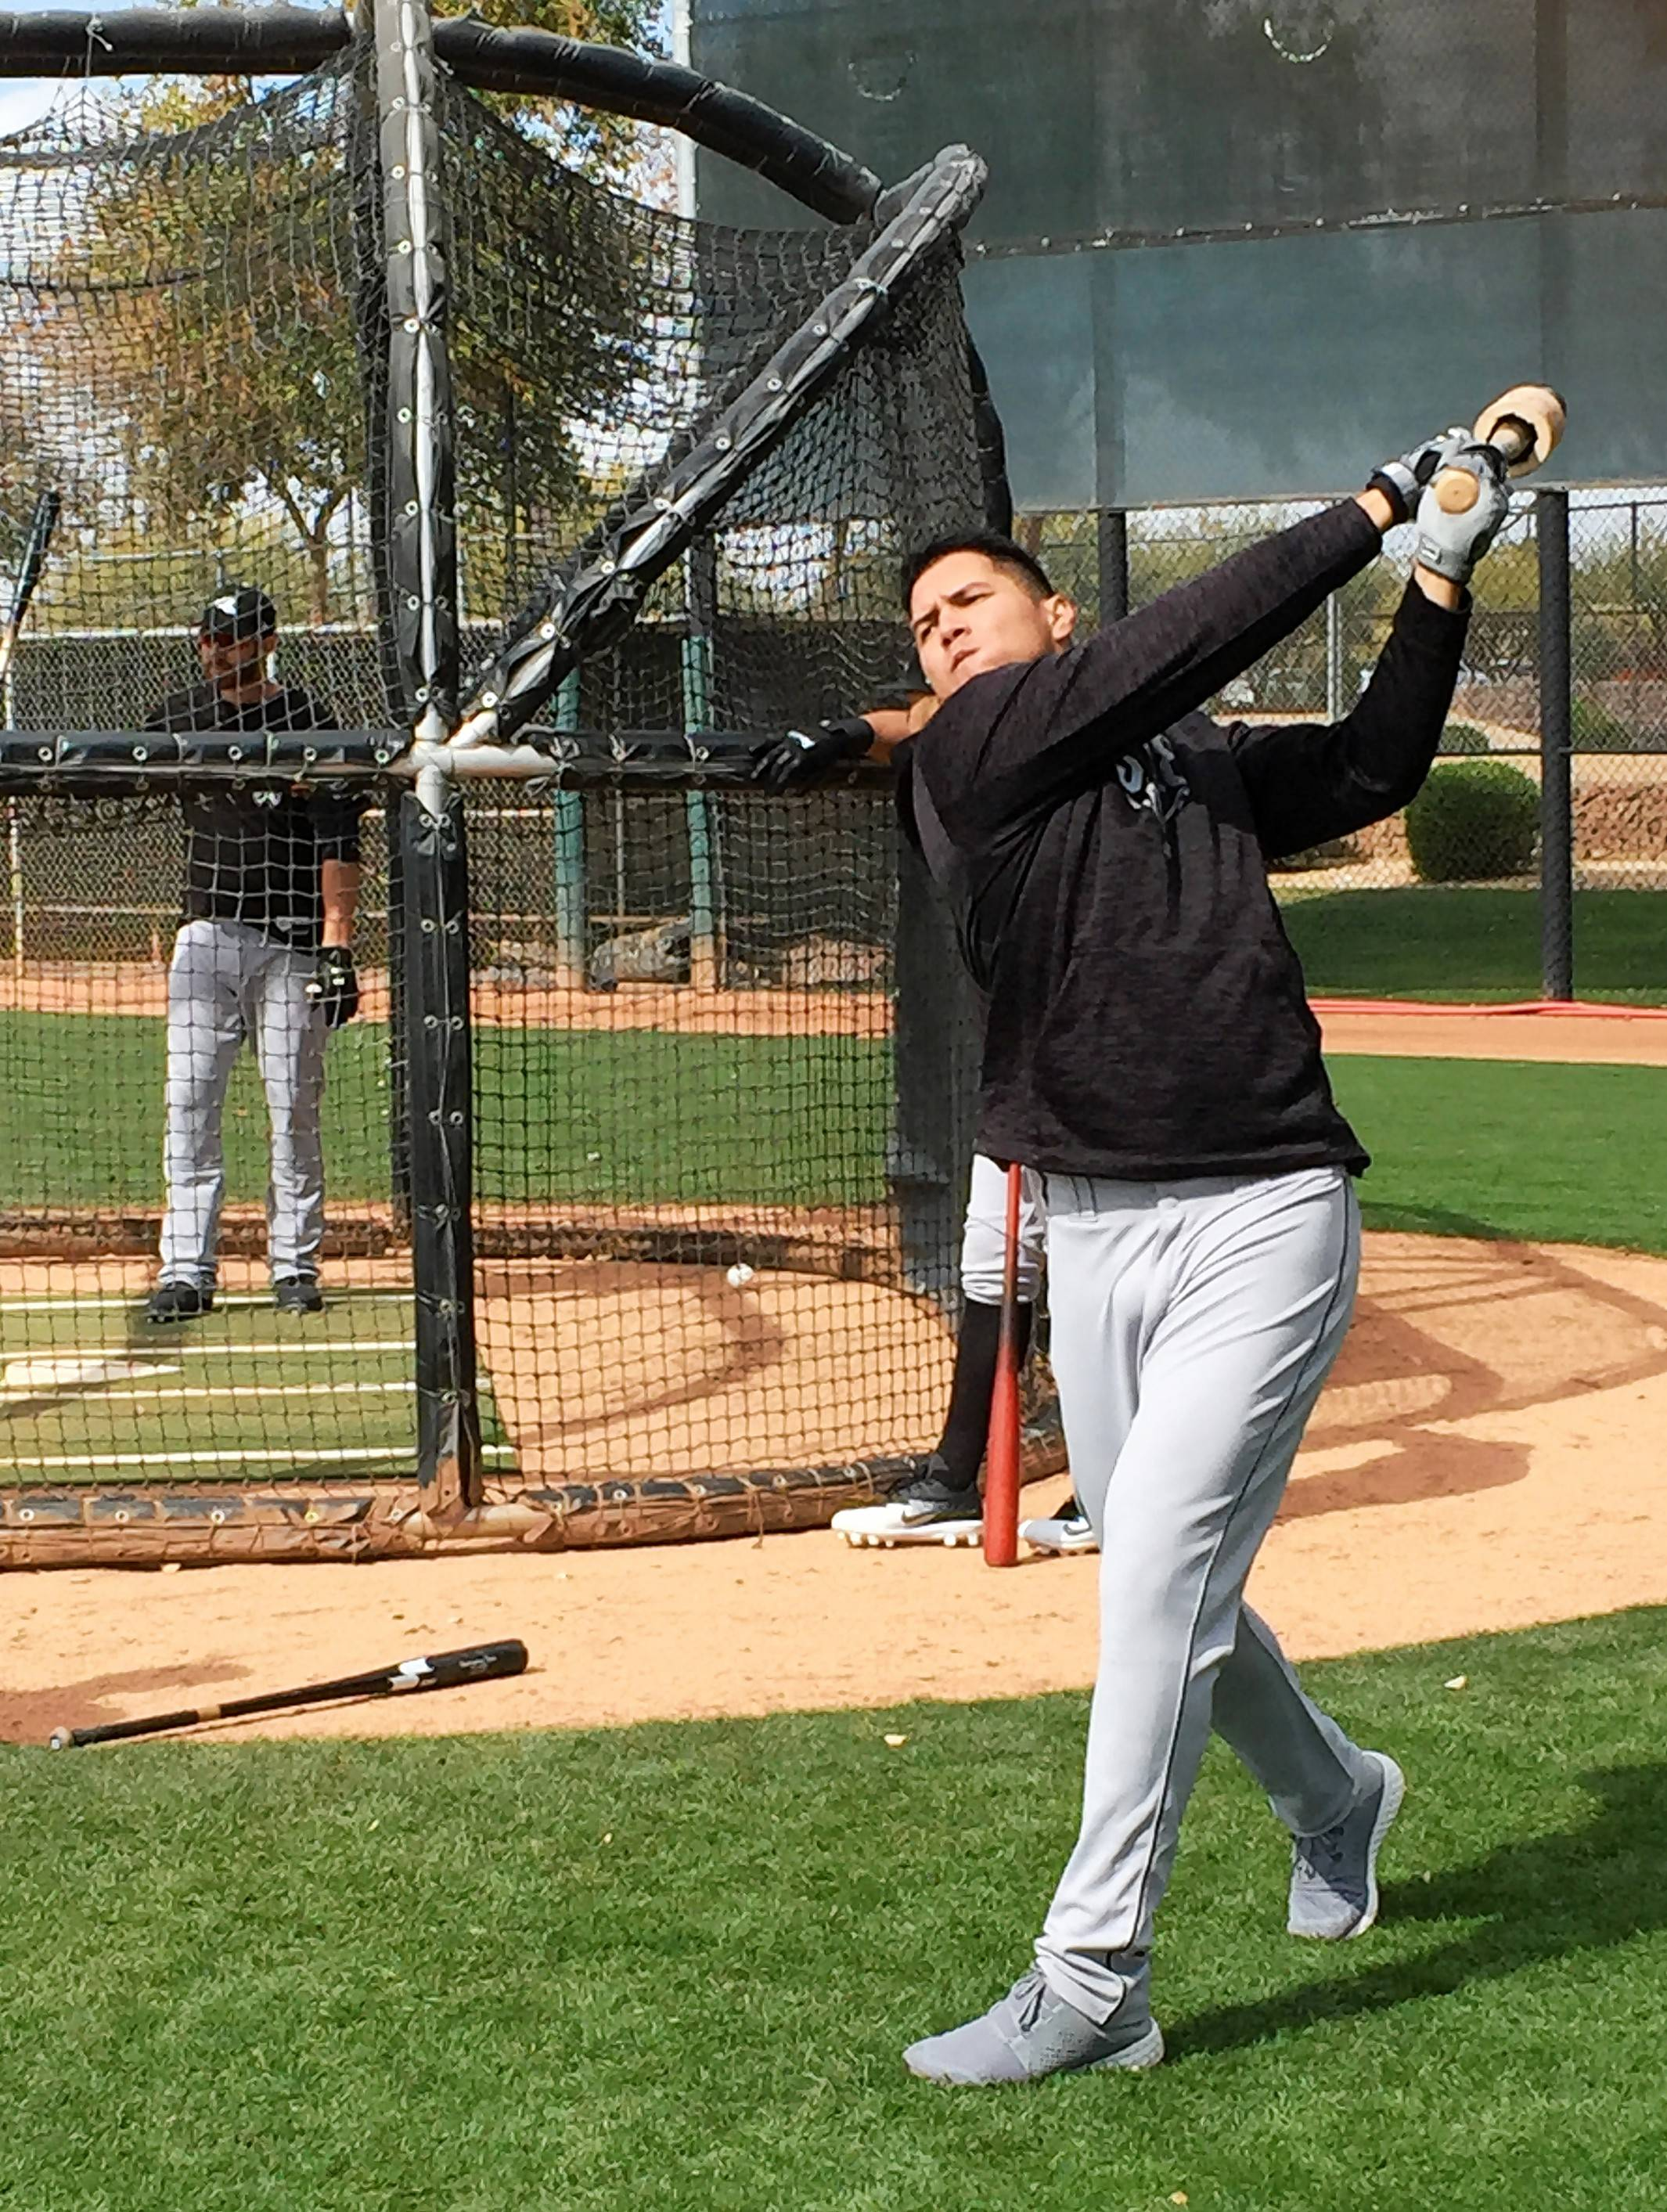 Chicago White Sox outfielder Avisail Garcia was on hand for the team's first full squad workout Monday at Camelback Ranch in Glendale, Arizona.